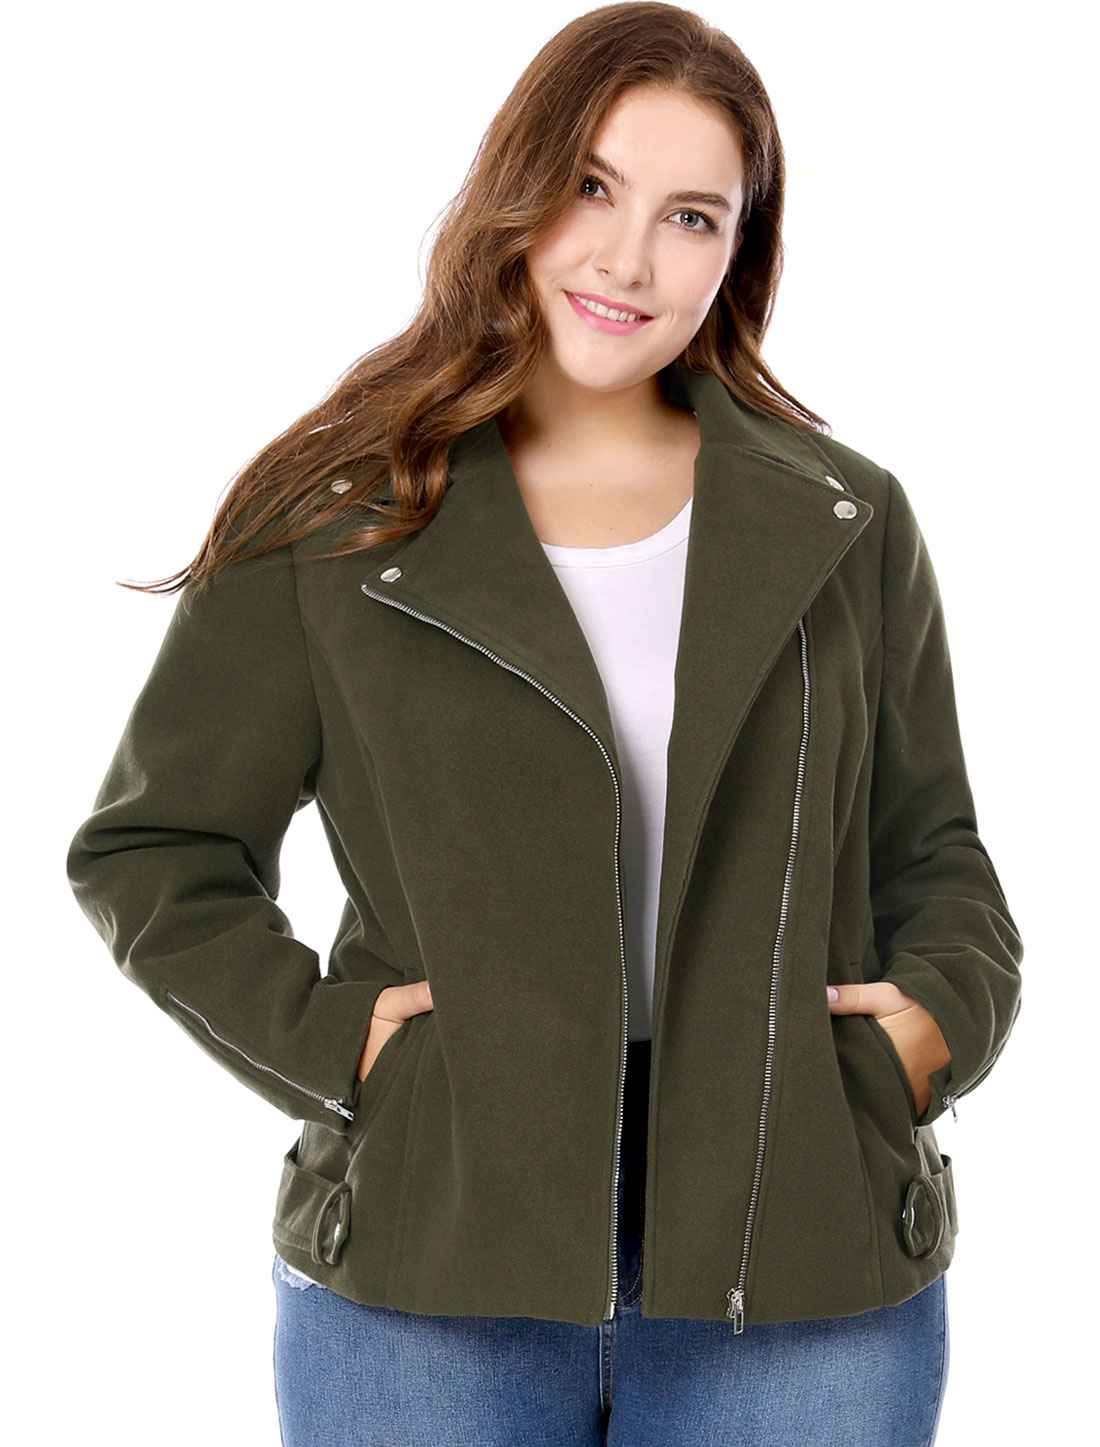 Unique Bargains Women's Plus Size Inclined Zip Closure Moto Jacket Green (Size 3X)